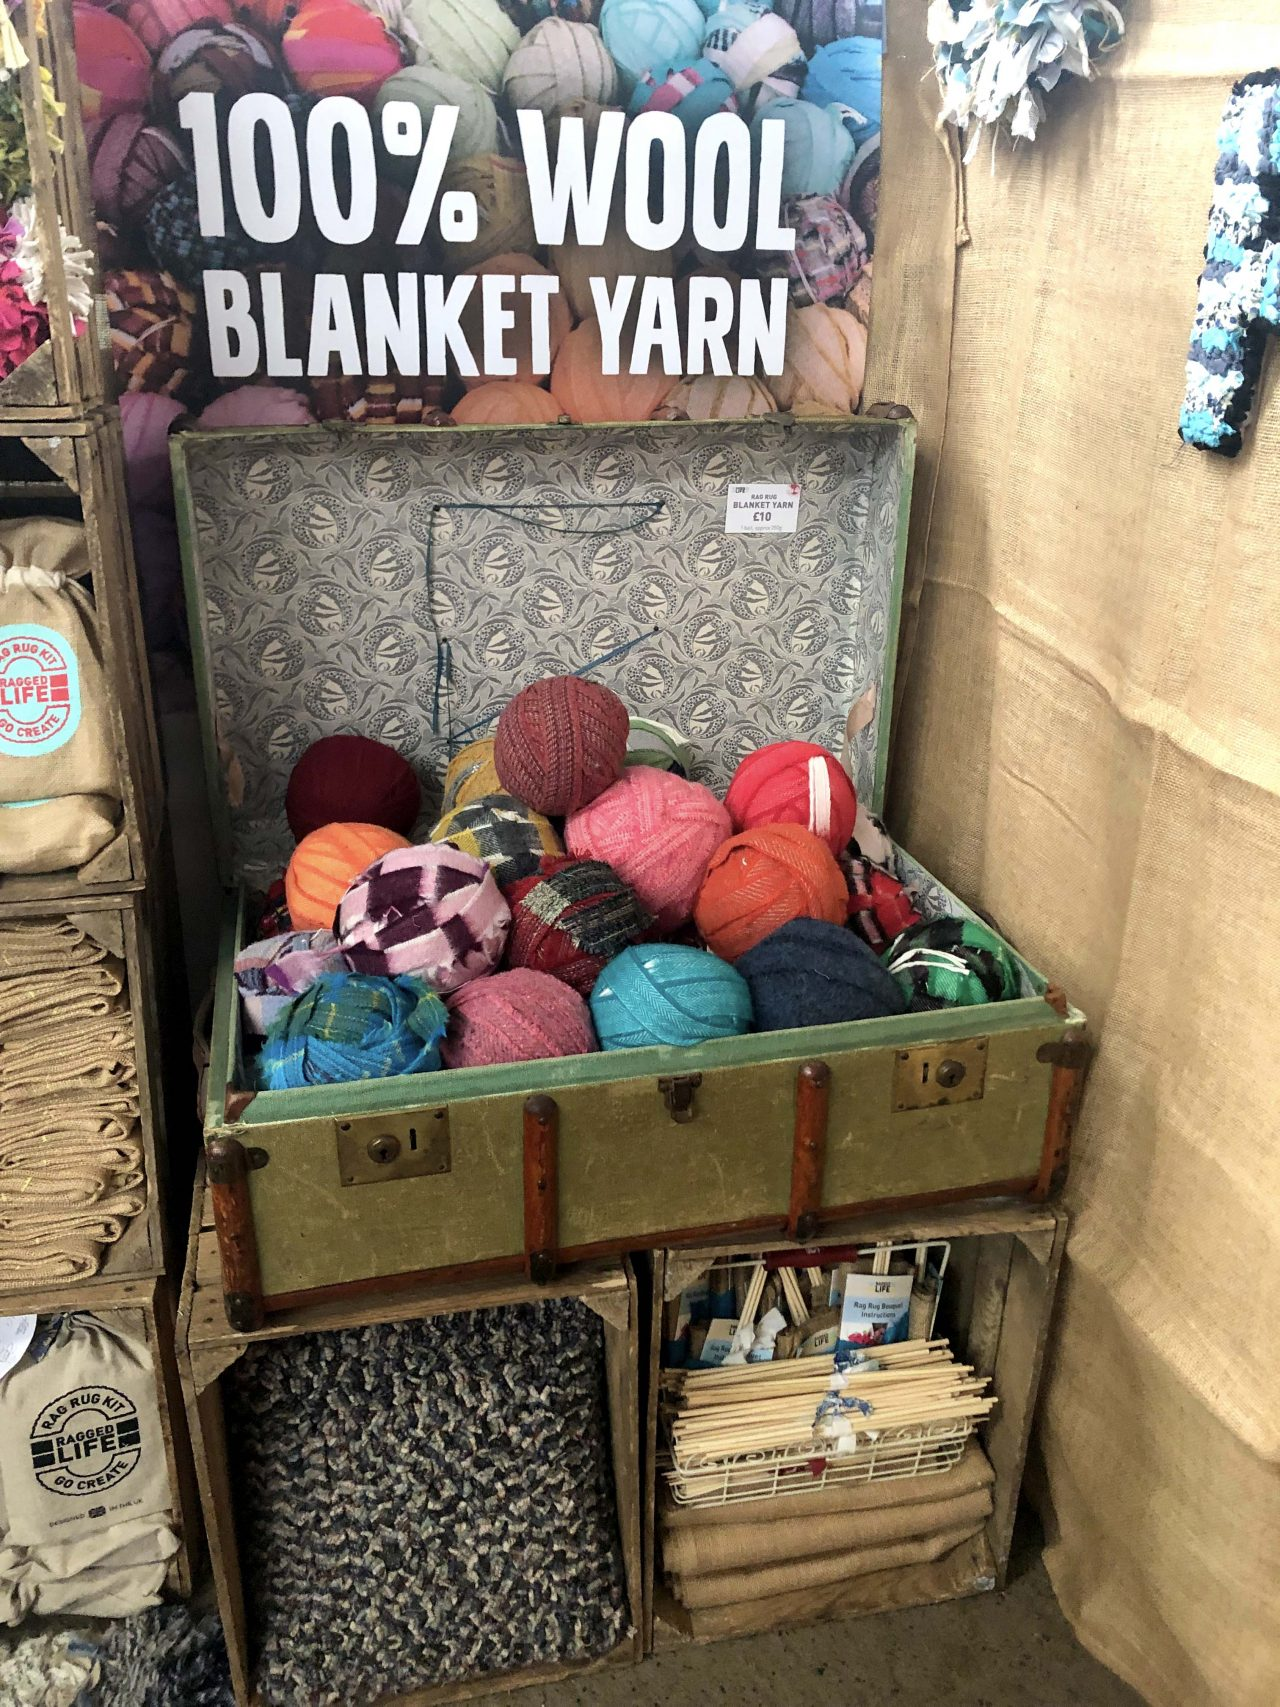 Ragged Life rag rug stand at Woolfest 2019 in Cockermouth, Cumbria festival with balls of multicoloured blanket yarn